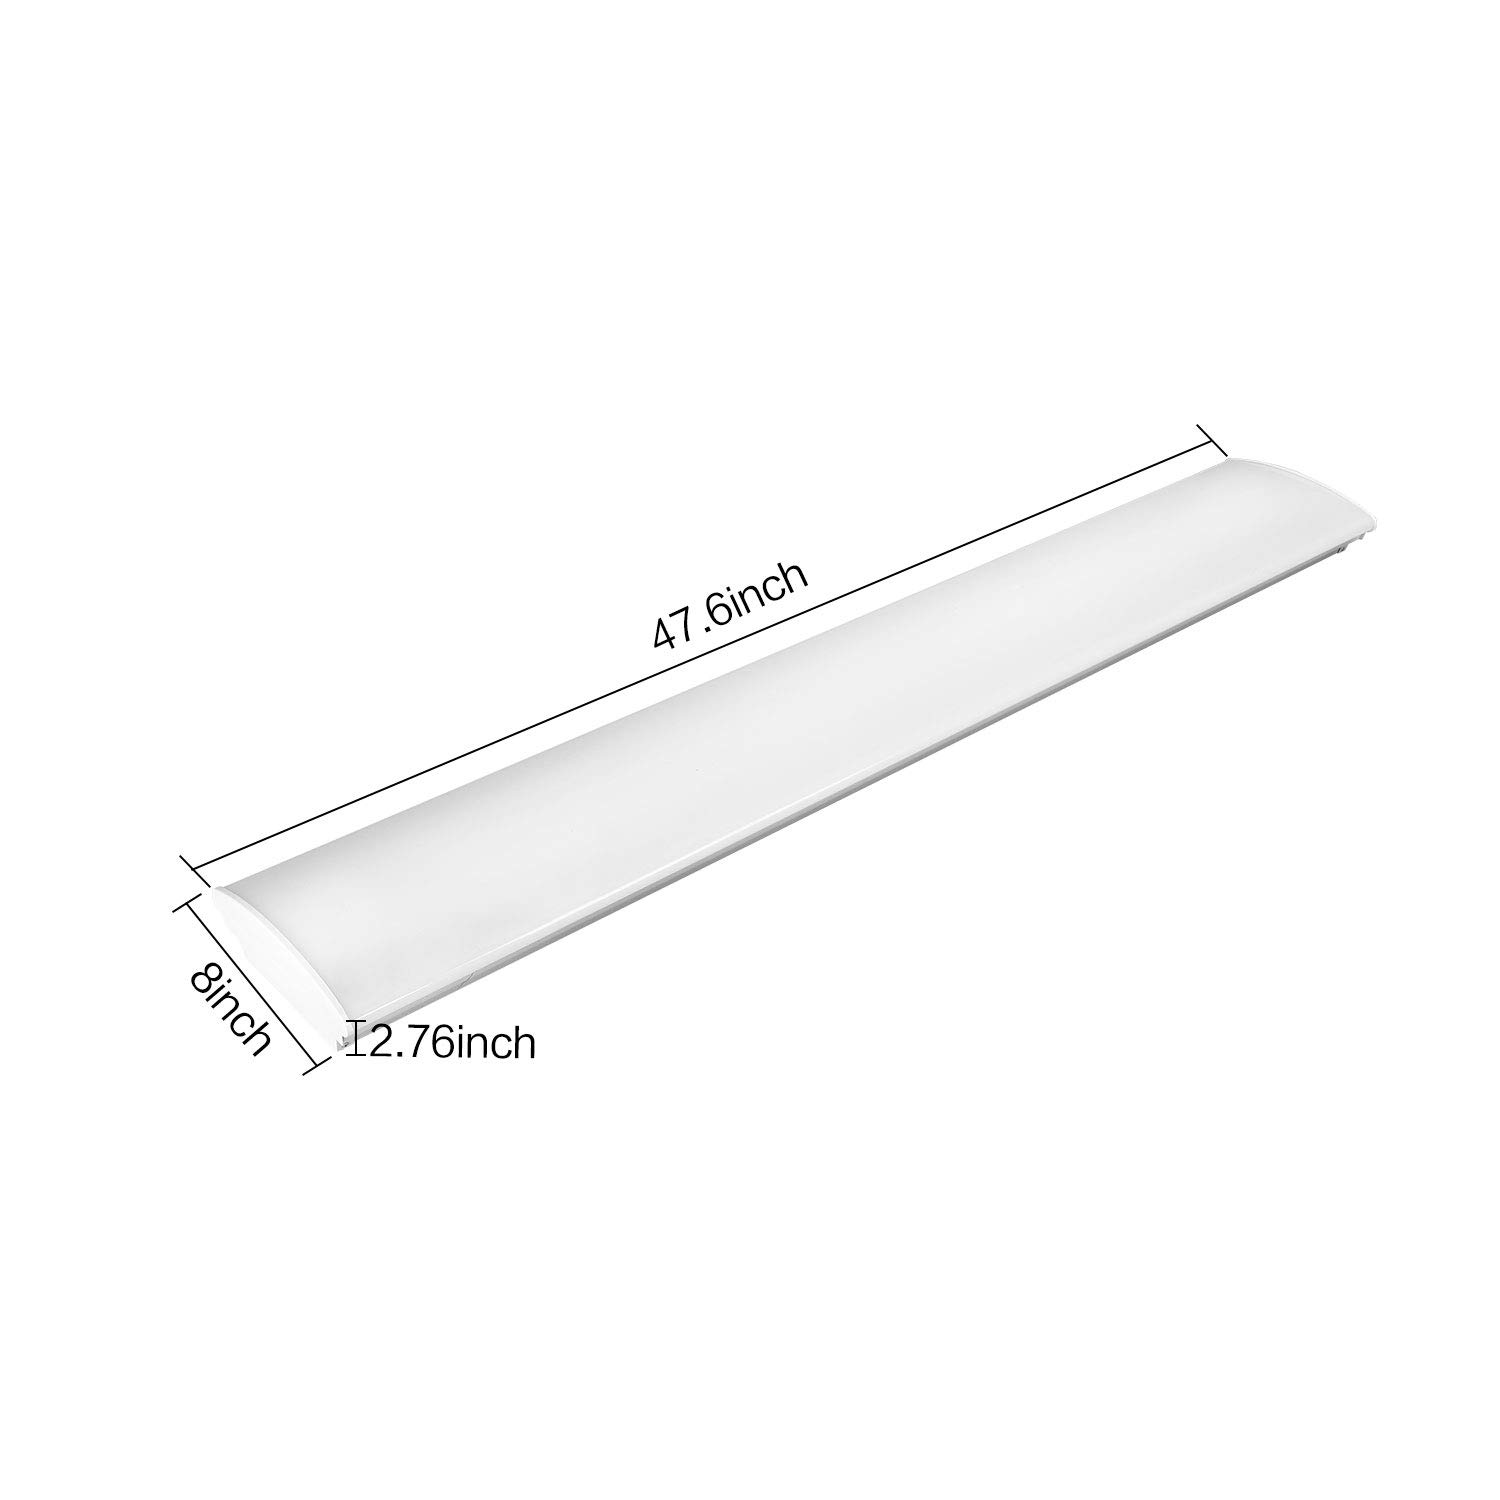 4FT LED Kitchen Light Fixture 50W LED Utility Frosted Ceiling Light 5600lm 4000K  eBay